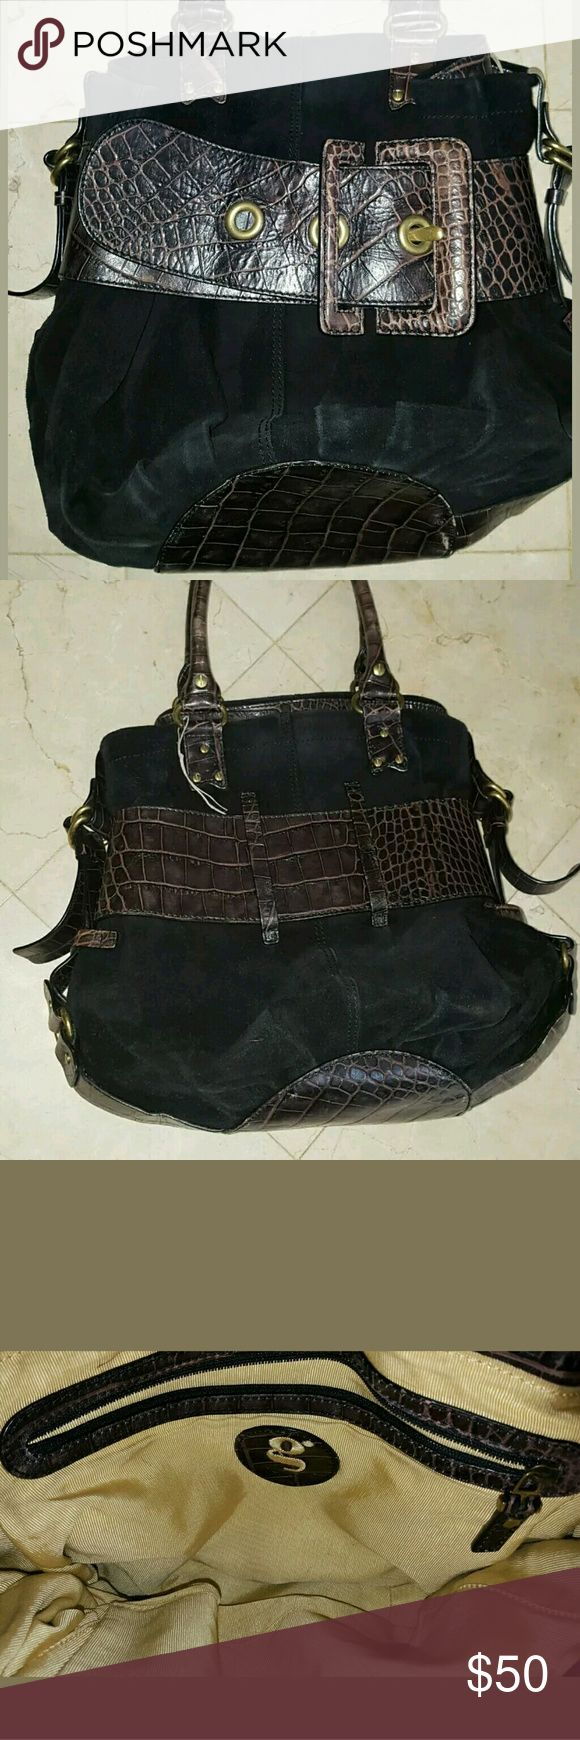 G. Series By Cole Haan Big Buckle Purse Handbag in very good condition   comes with bust bag   all offers will be considered! Cole Haan Bags Shoulder Bags